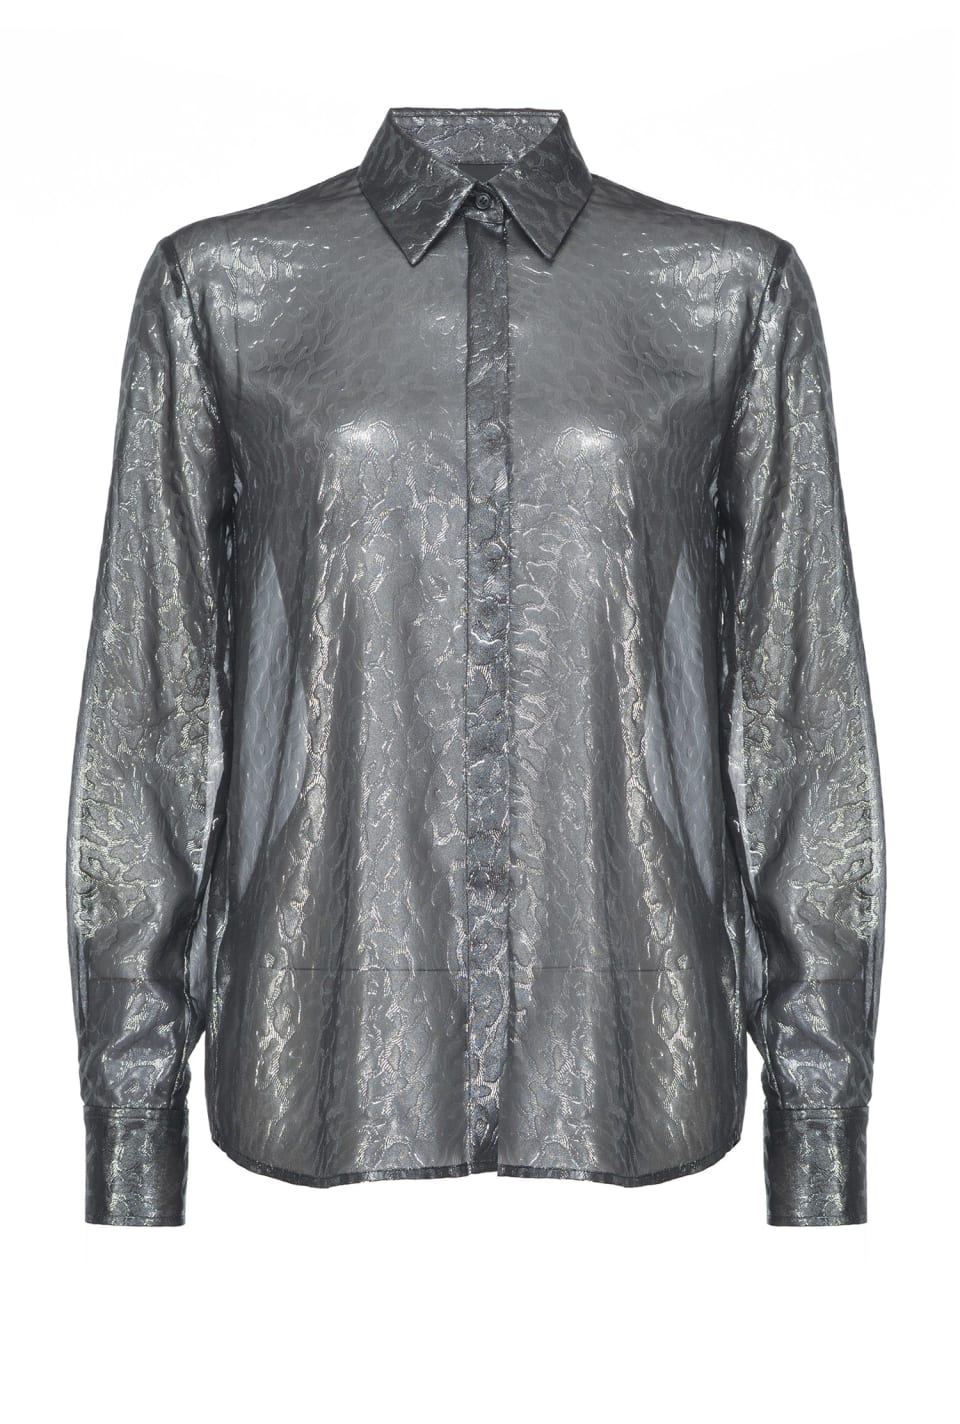 Shirt in leopard-print laminated georgette - Pinko